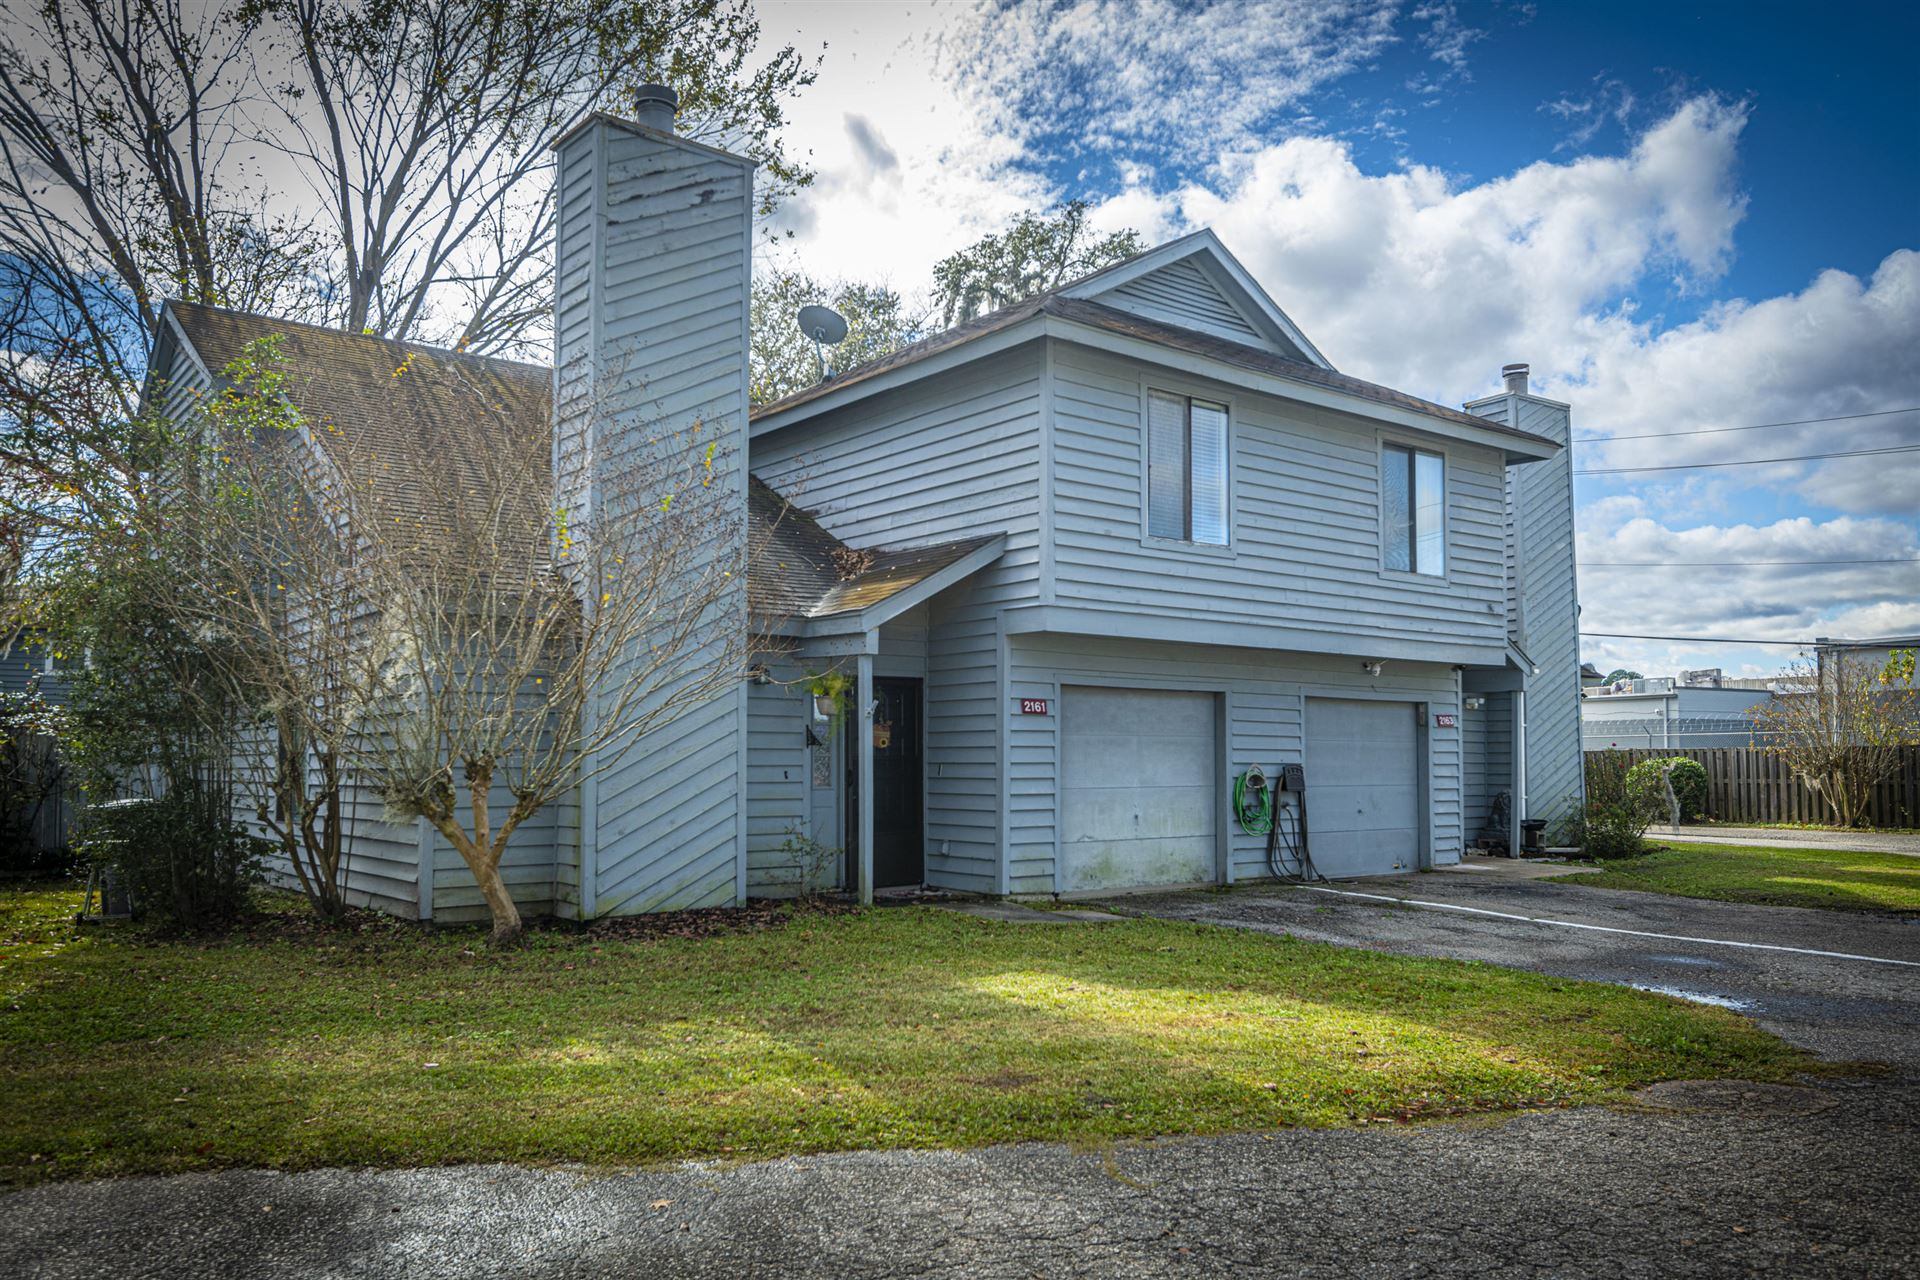 Photo of 2161 Palermo Place, North Charleston, SC 29406 (MLS # 20032067)